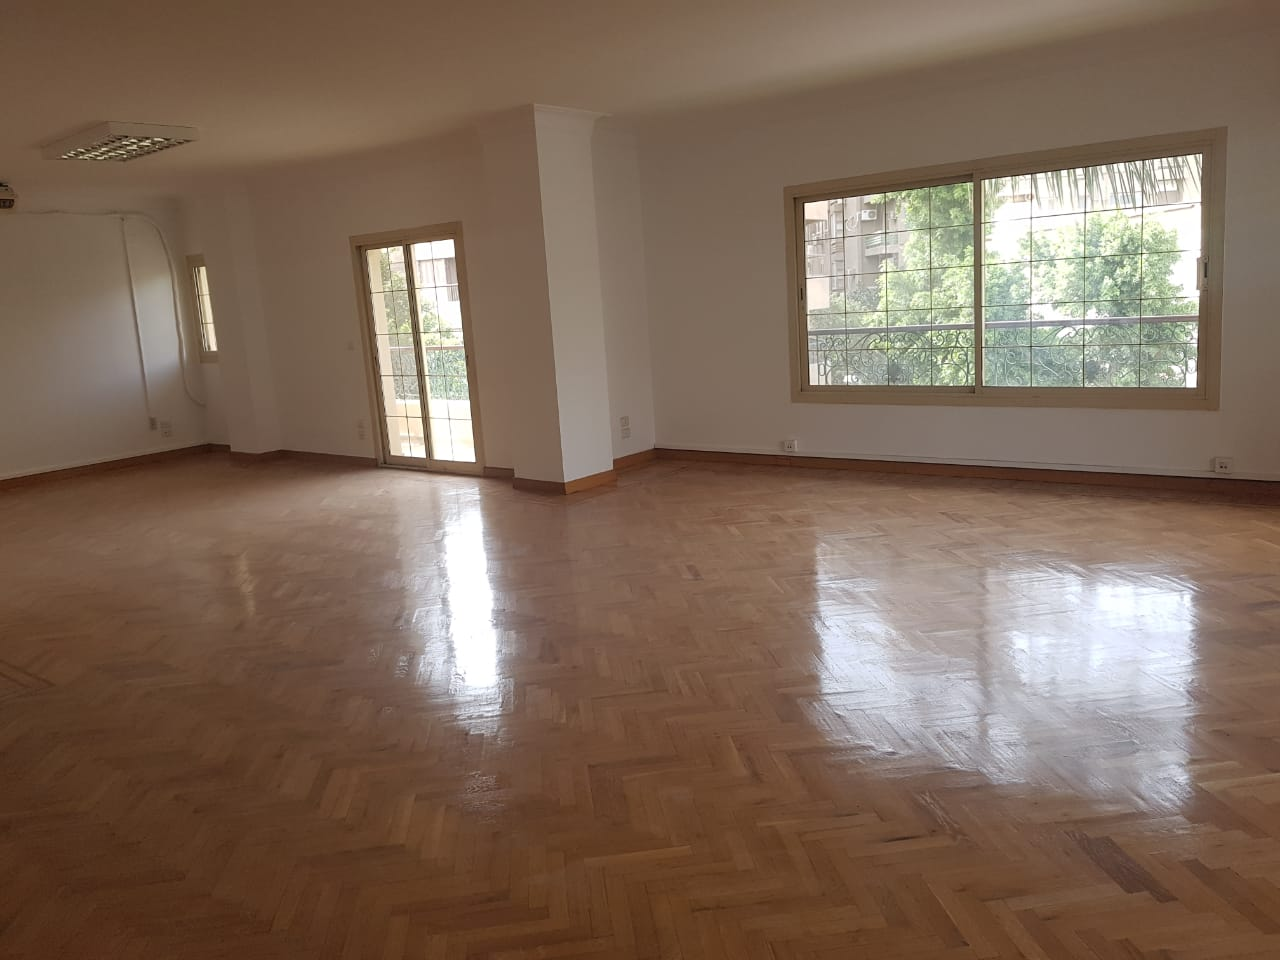 Office Spaces For Rent In Maadi Maadi Degla -#6